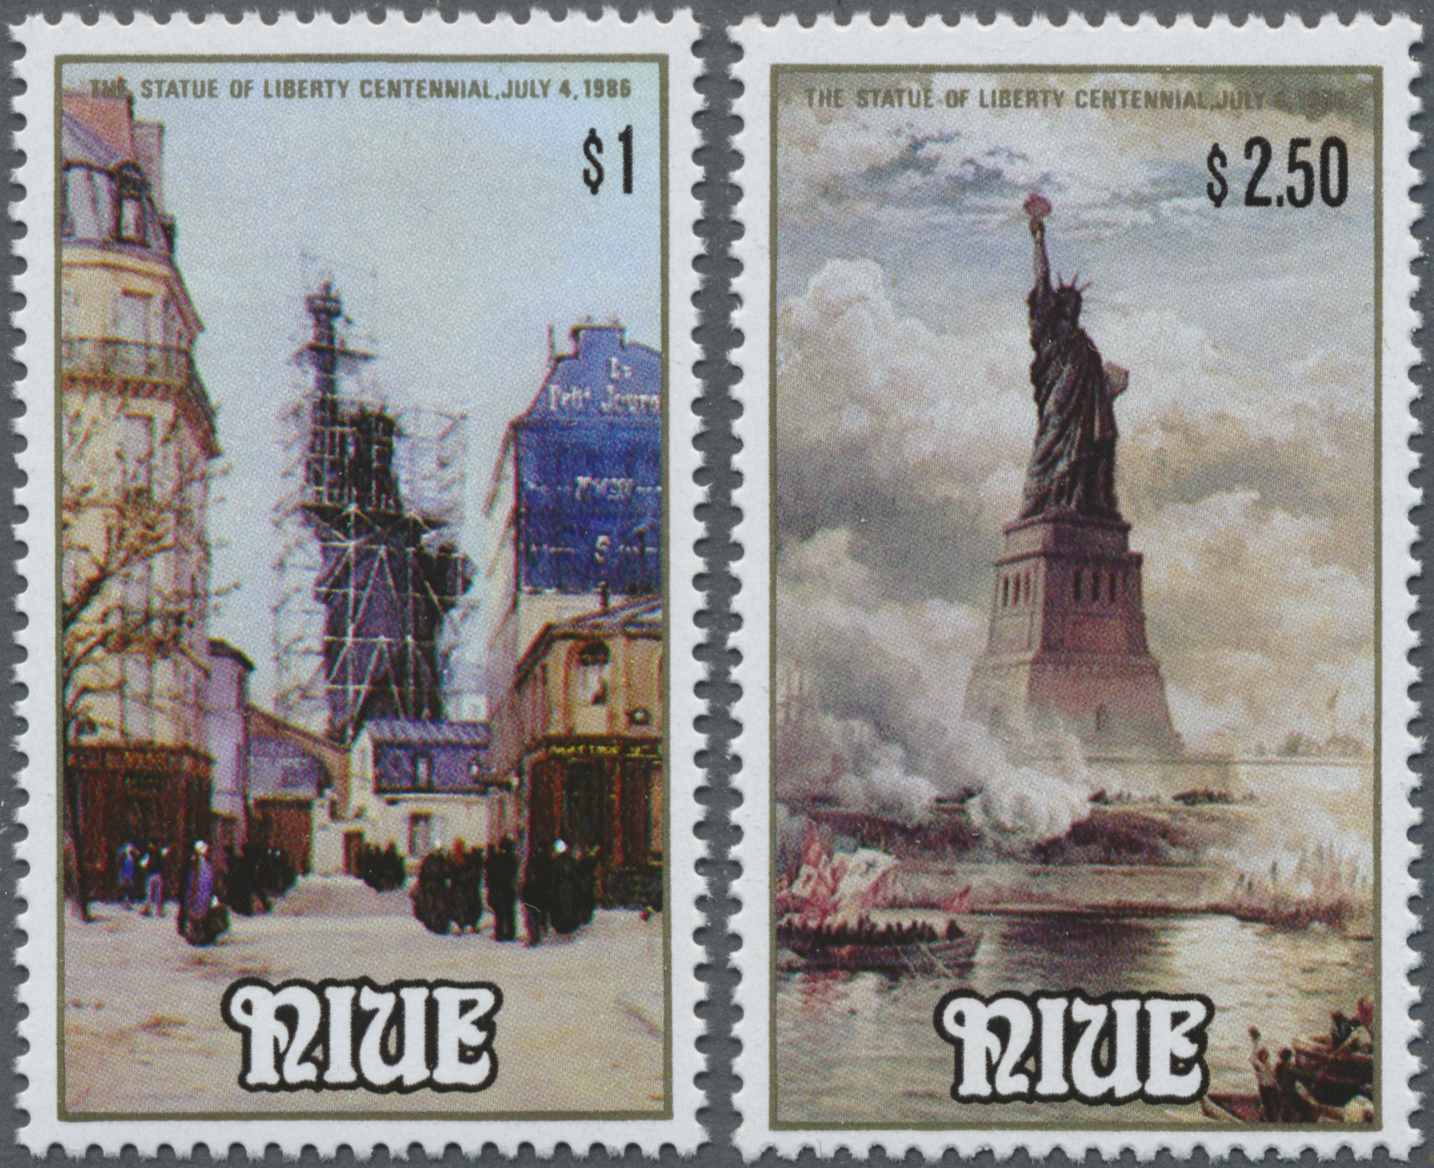 Lot 15904 - Thematik: Sehenswürdigkeiten-Freiheitsstatue / sights- statue of liberty  -  Auktionshaus Christoph Gärtner GmbH & Co. KG Sale #48 collections Overseas  Airmail / Ship mail & Thematics